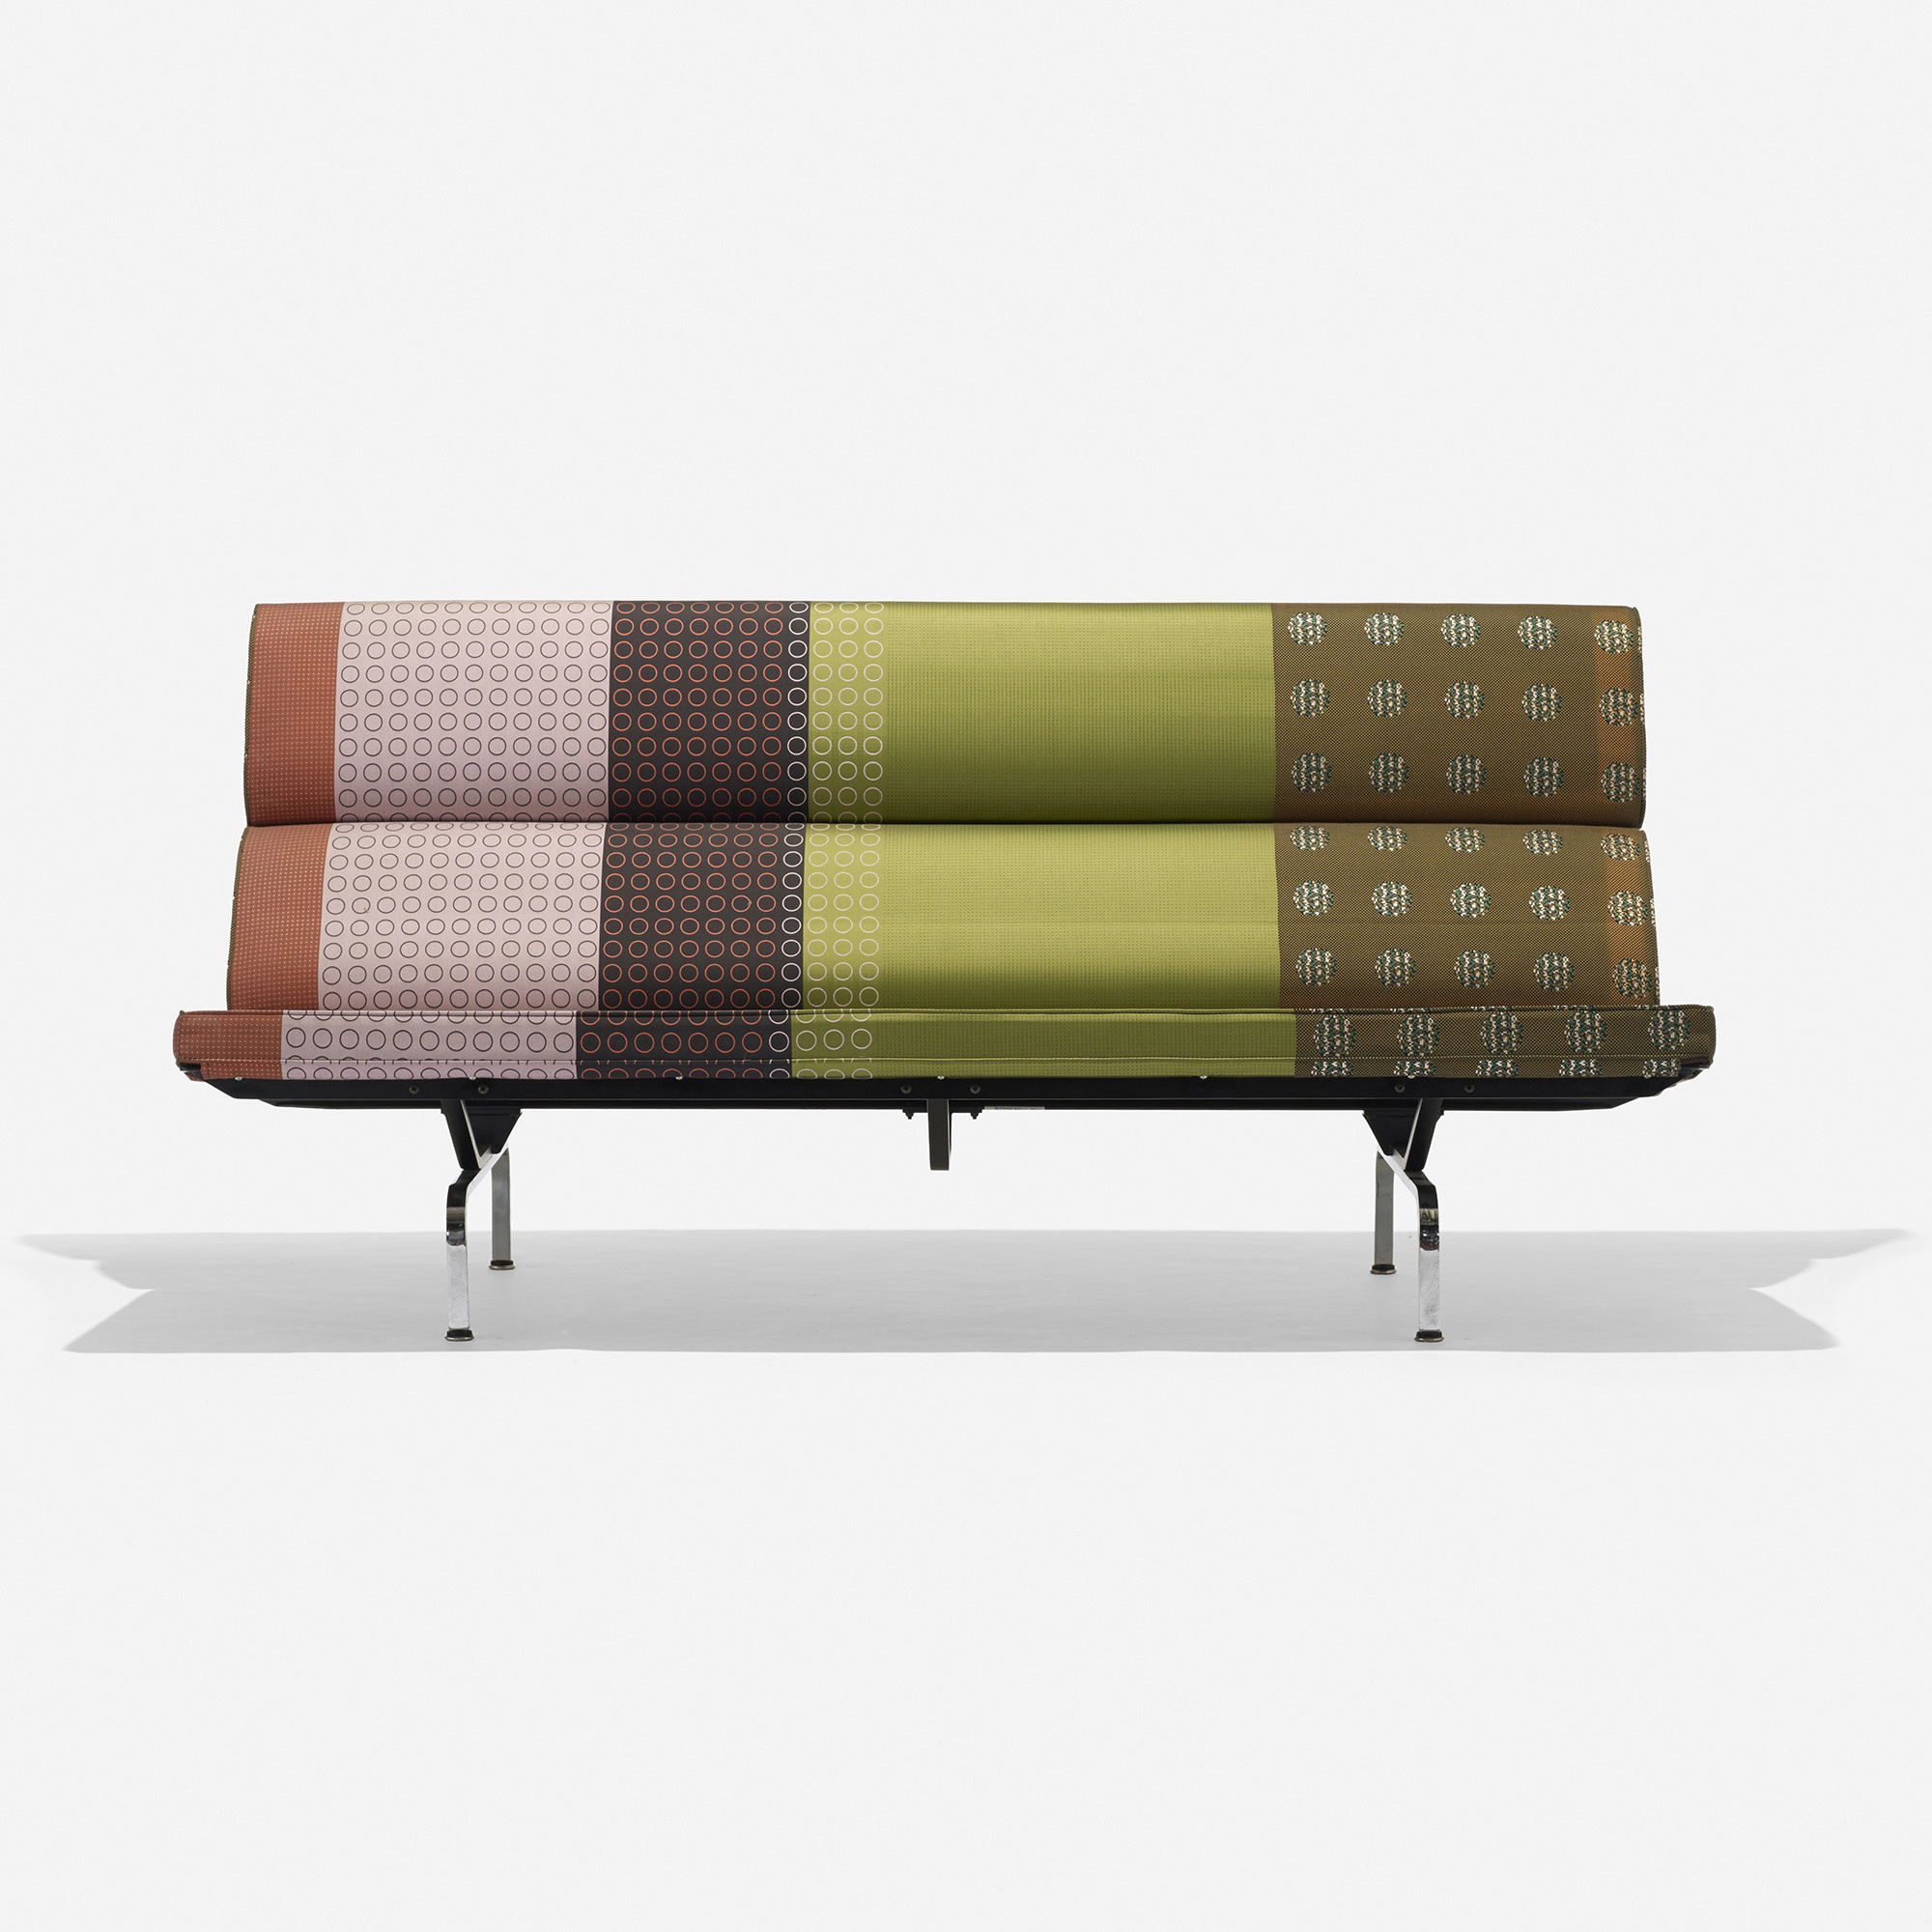 452: Charles And Ray Eames / Sofa Compact (1 Of 5)